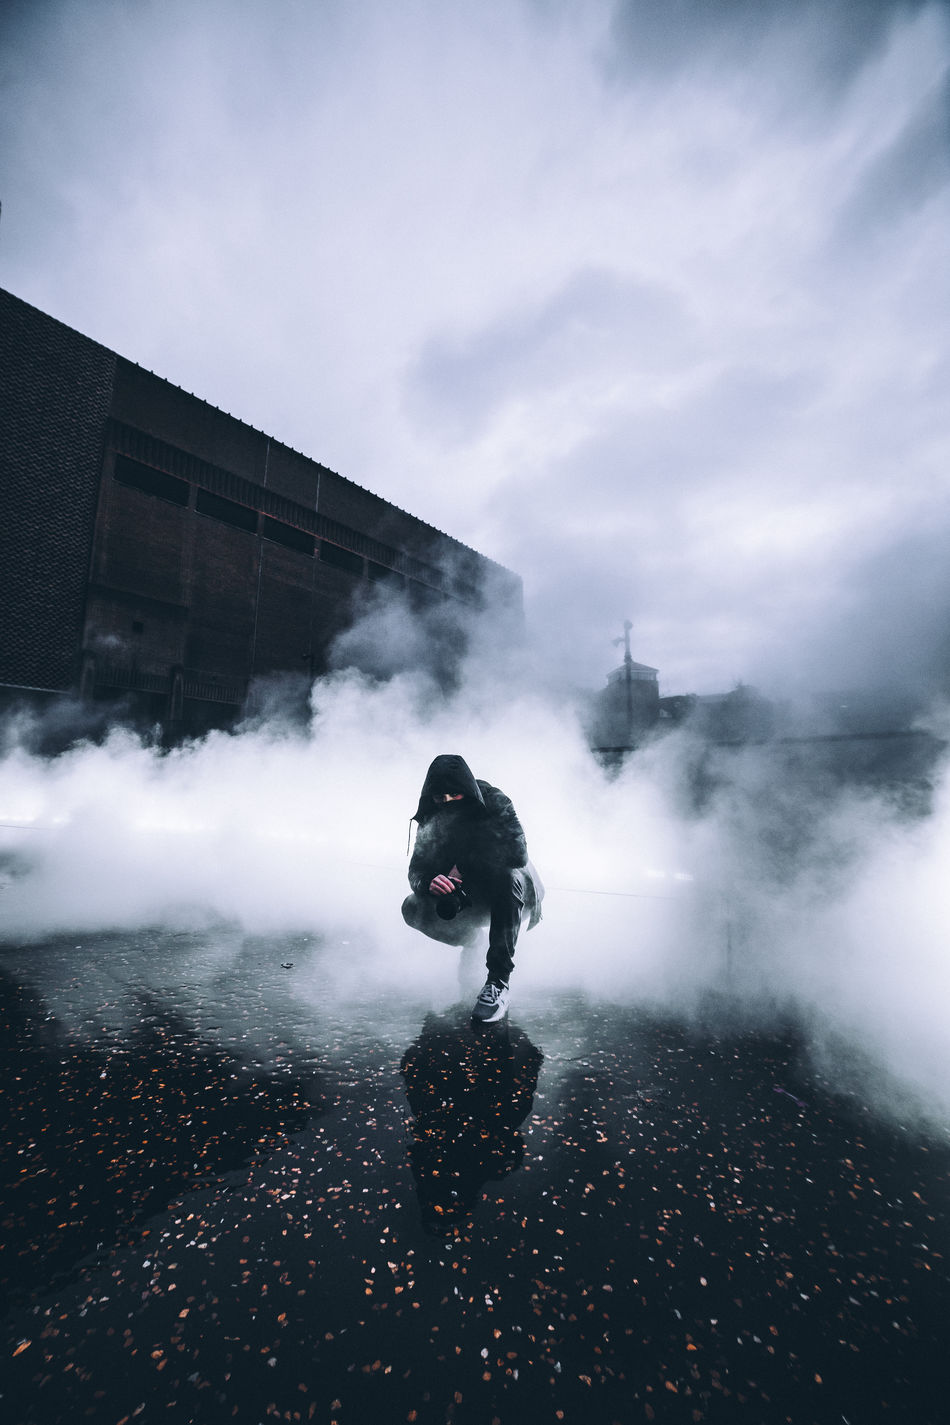 Fog vibes Check This Out City City Life Cloud - Sky Dark Day Explore Exploring Illuminated Light Motion Mysterious One Person Outdoors People Photography Plant Reflection Smoke Smoke - Physical Structure Street Streetphotography Surreal Surrealism Urban The Week On EyeEm